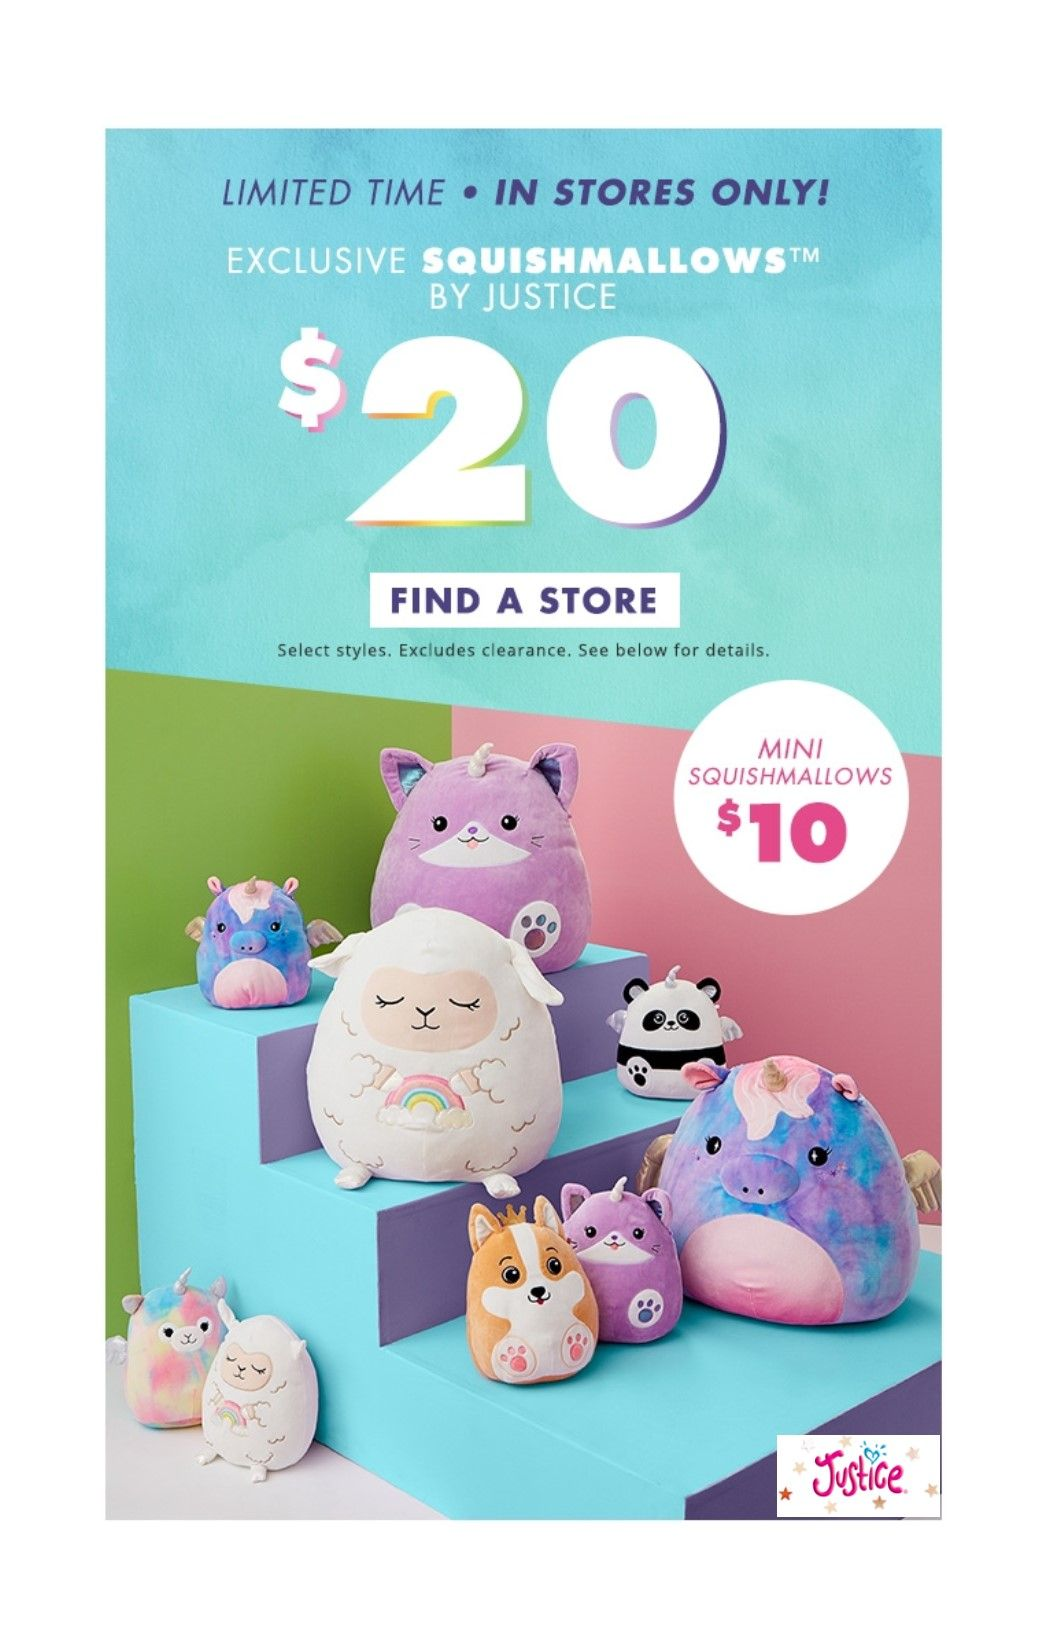 20 Squishmallow Offer Is Valid In U S Justice Locations While Supplies Last Through 2 14 2019 Exclusions May Apply Shop For Less Holiday Shop Dressbarn